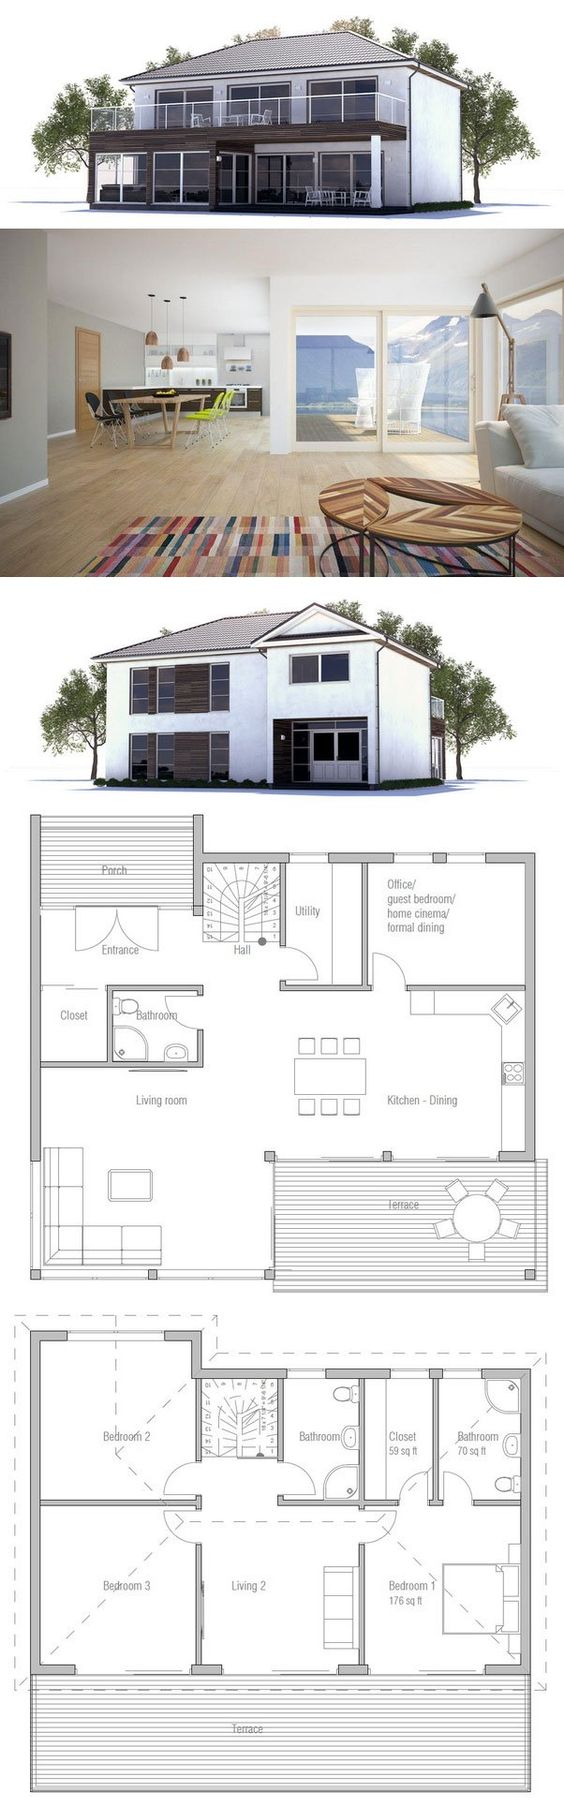 Modern House Plan from onceptHome.com mazing homes Pinterest ... size: 564 x 1806 post ID: 2 File size: 0 B